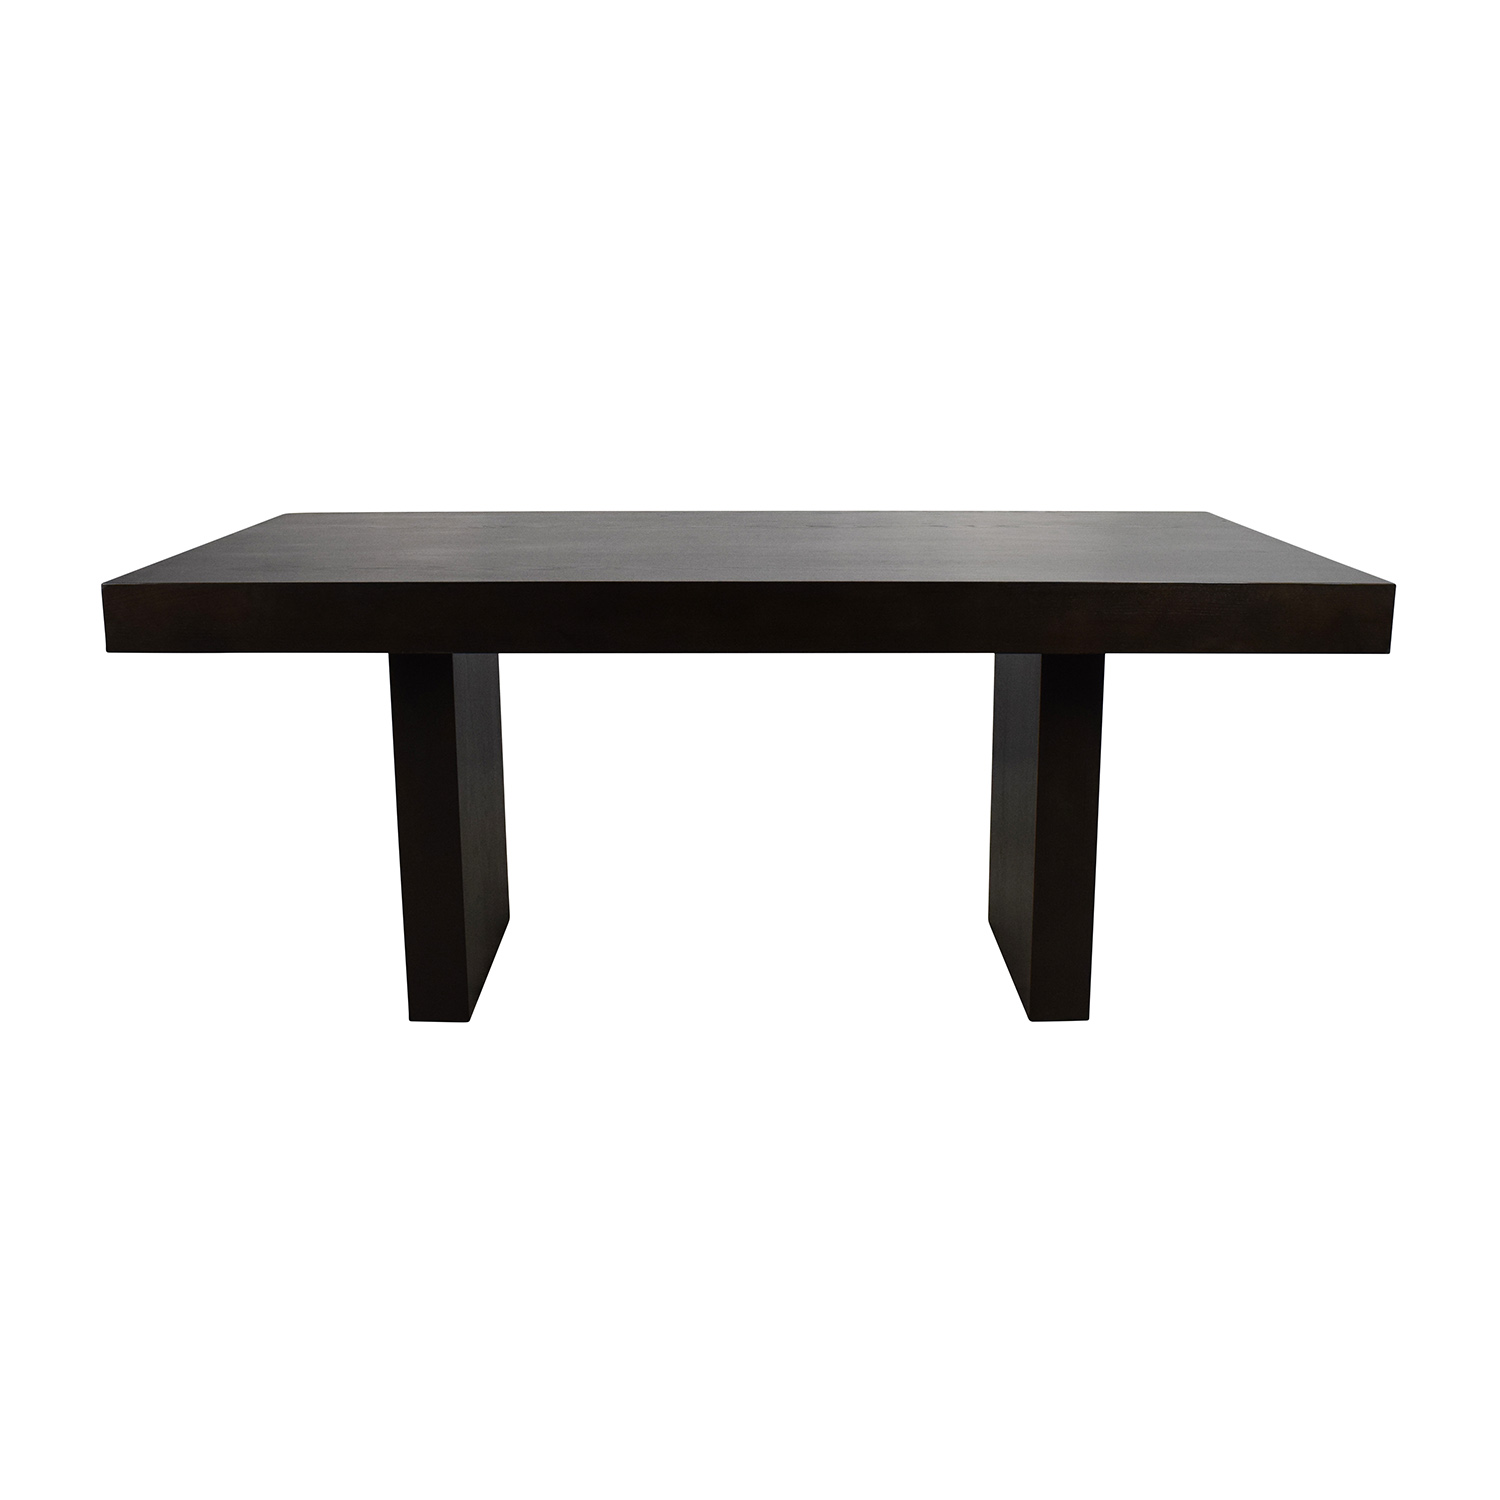 West Elm Alexa Dining Table Coupon - West elm square dining table